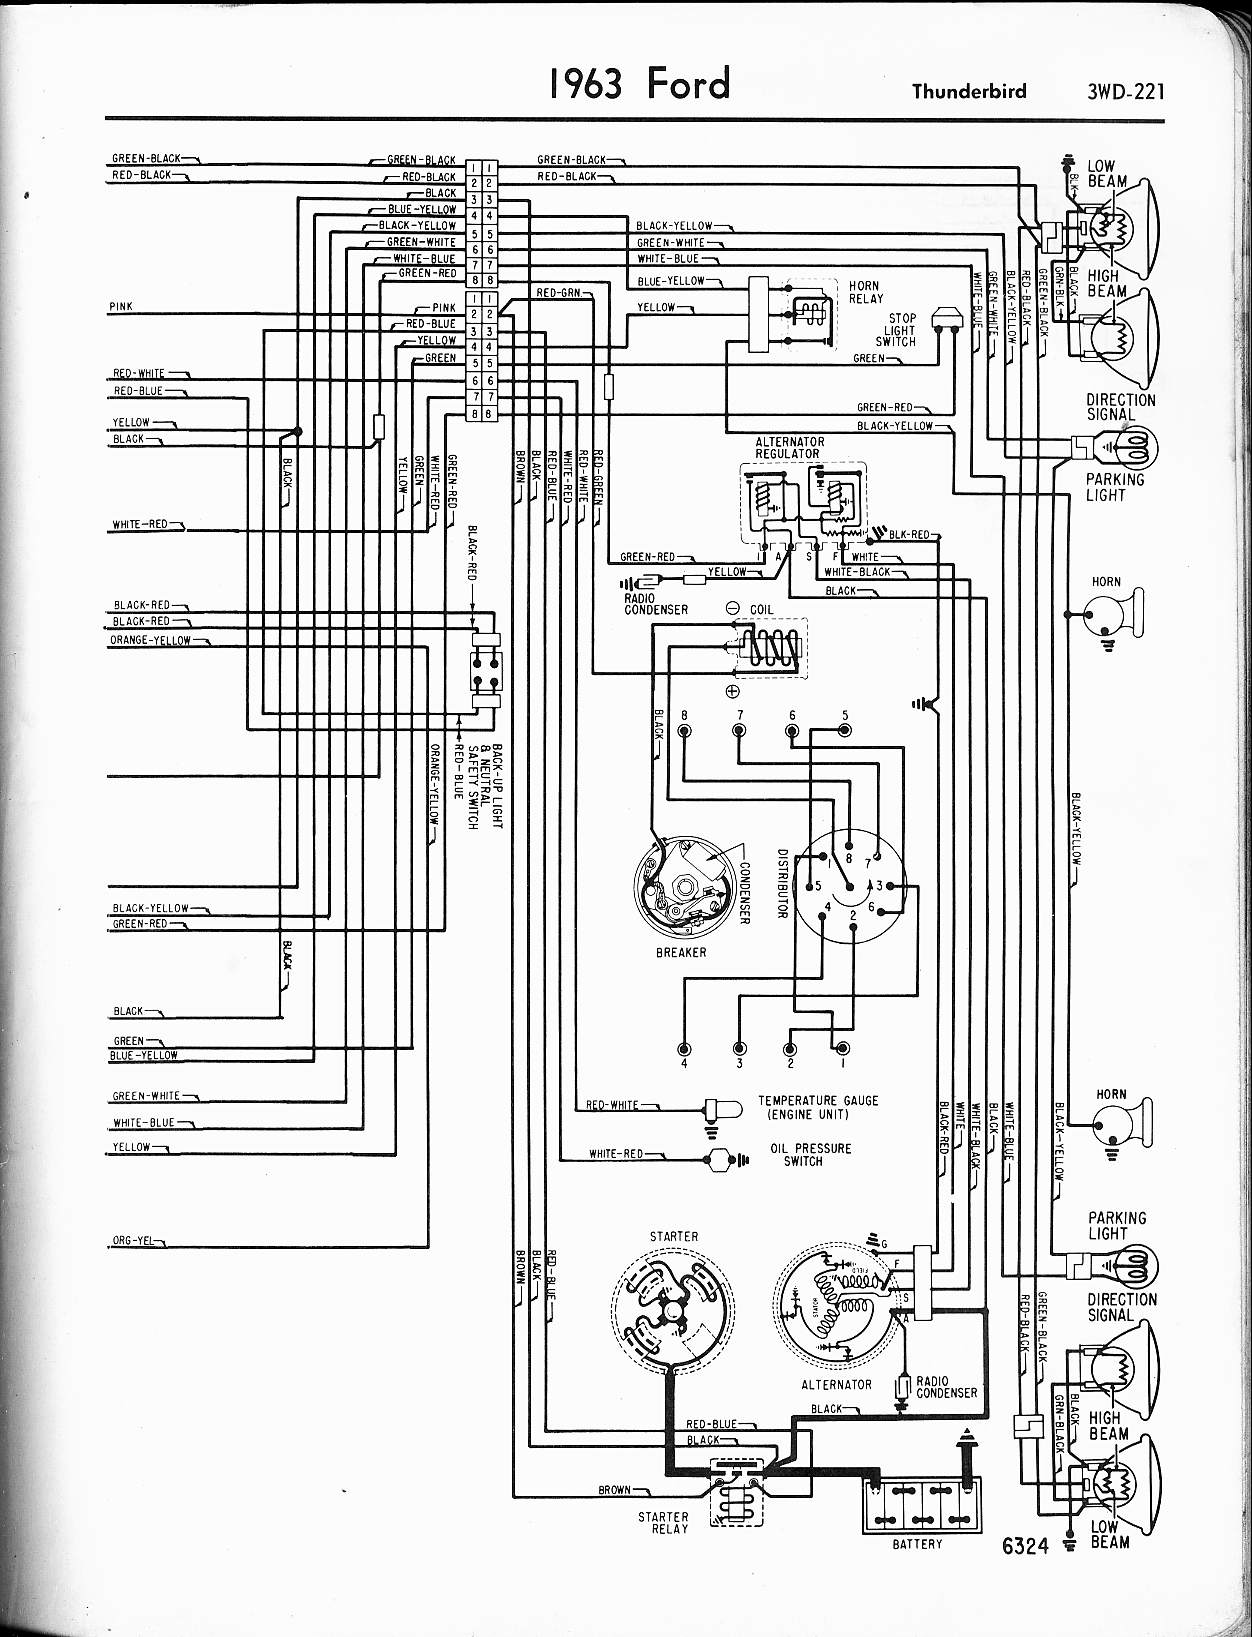 wiring diagrams ford pickups the wiring diagram readingrat net 1963 ford f100 wiring diagram 57 65 ford wiring diagrams, wiring diagram